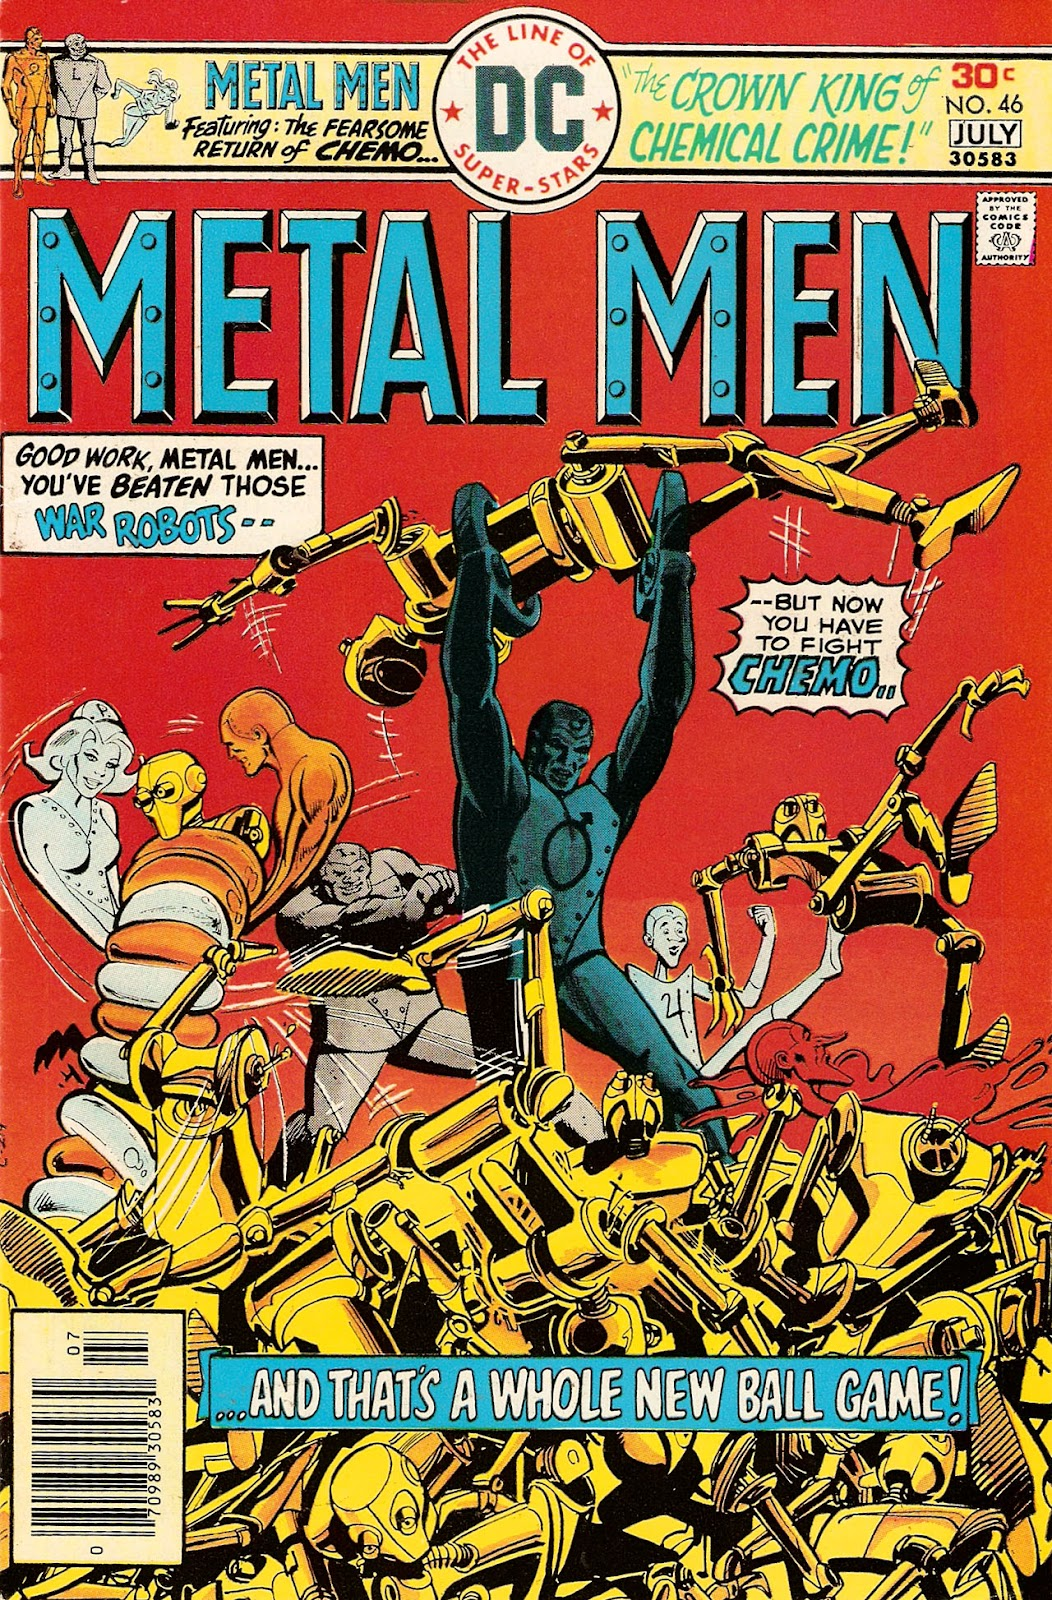 Metal Men (1963) issue 46 - Page 1